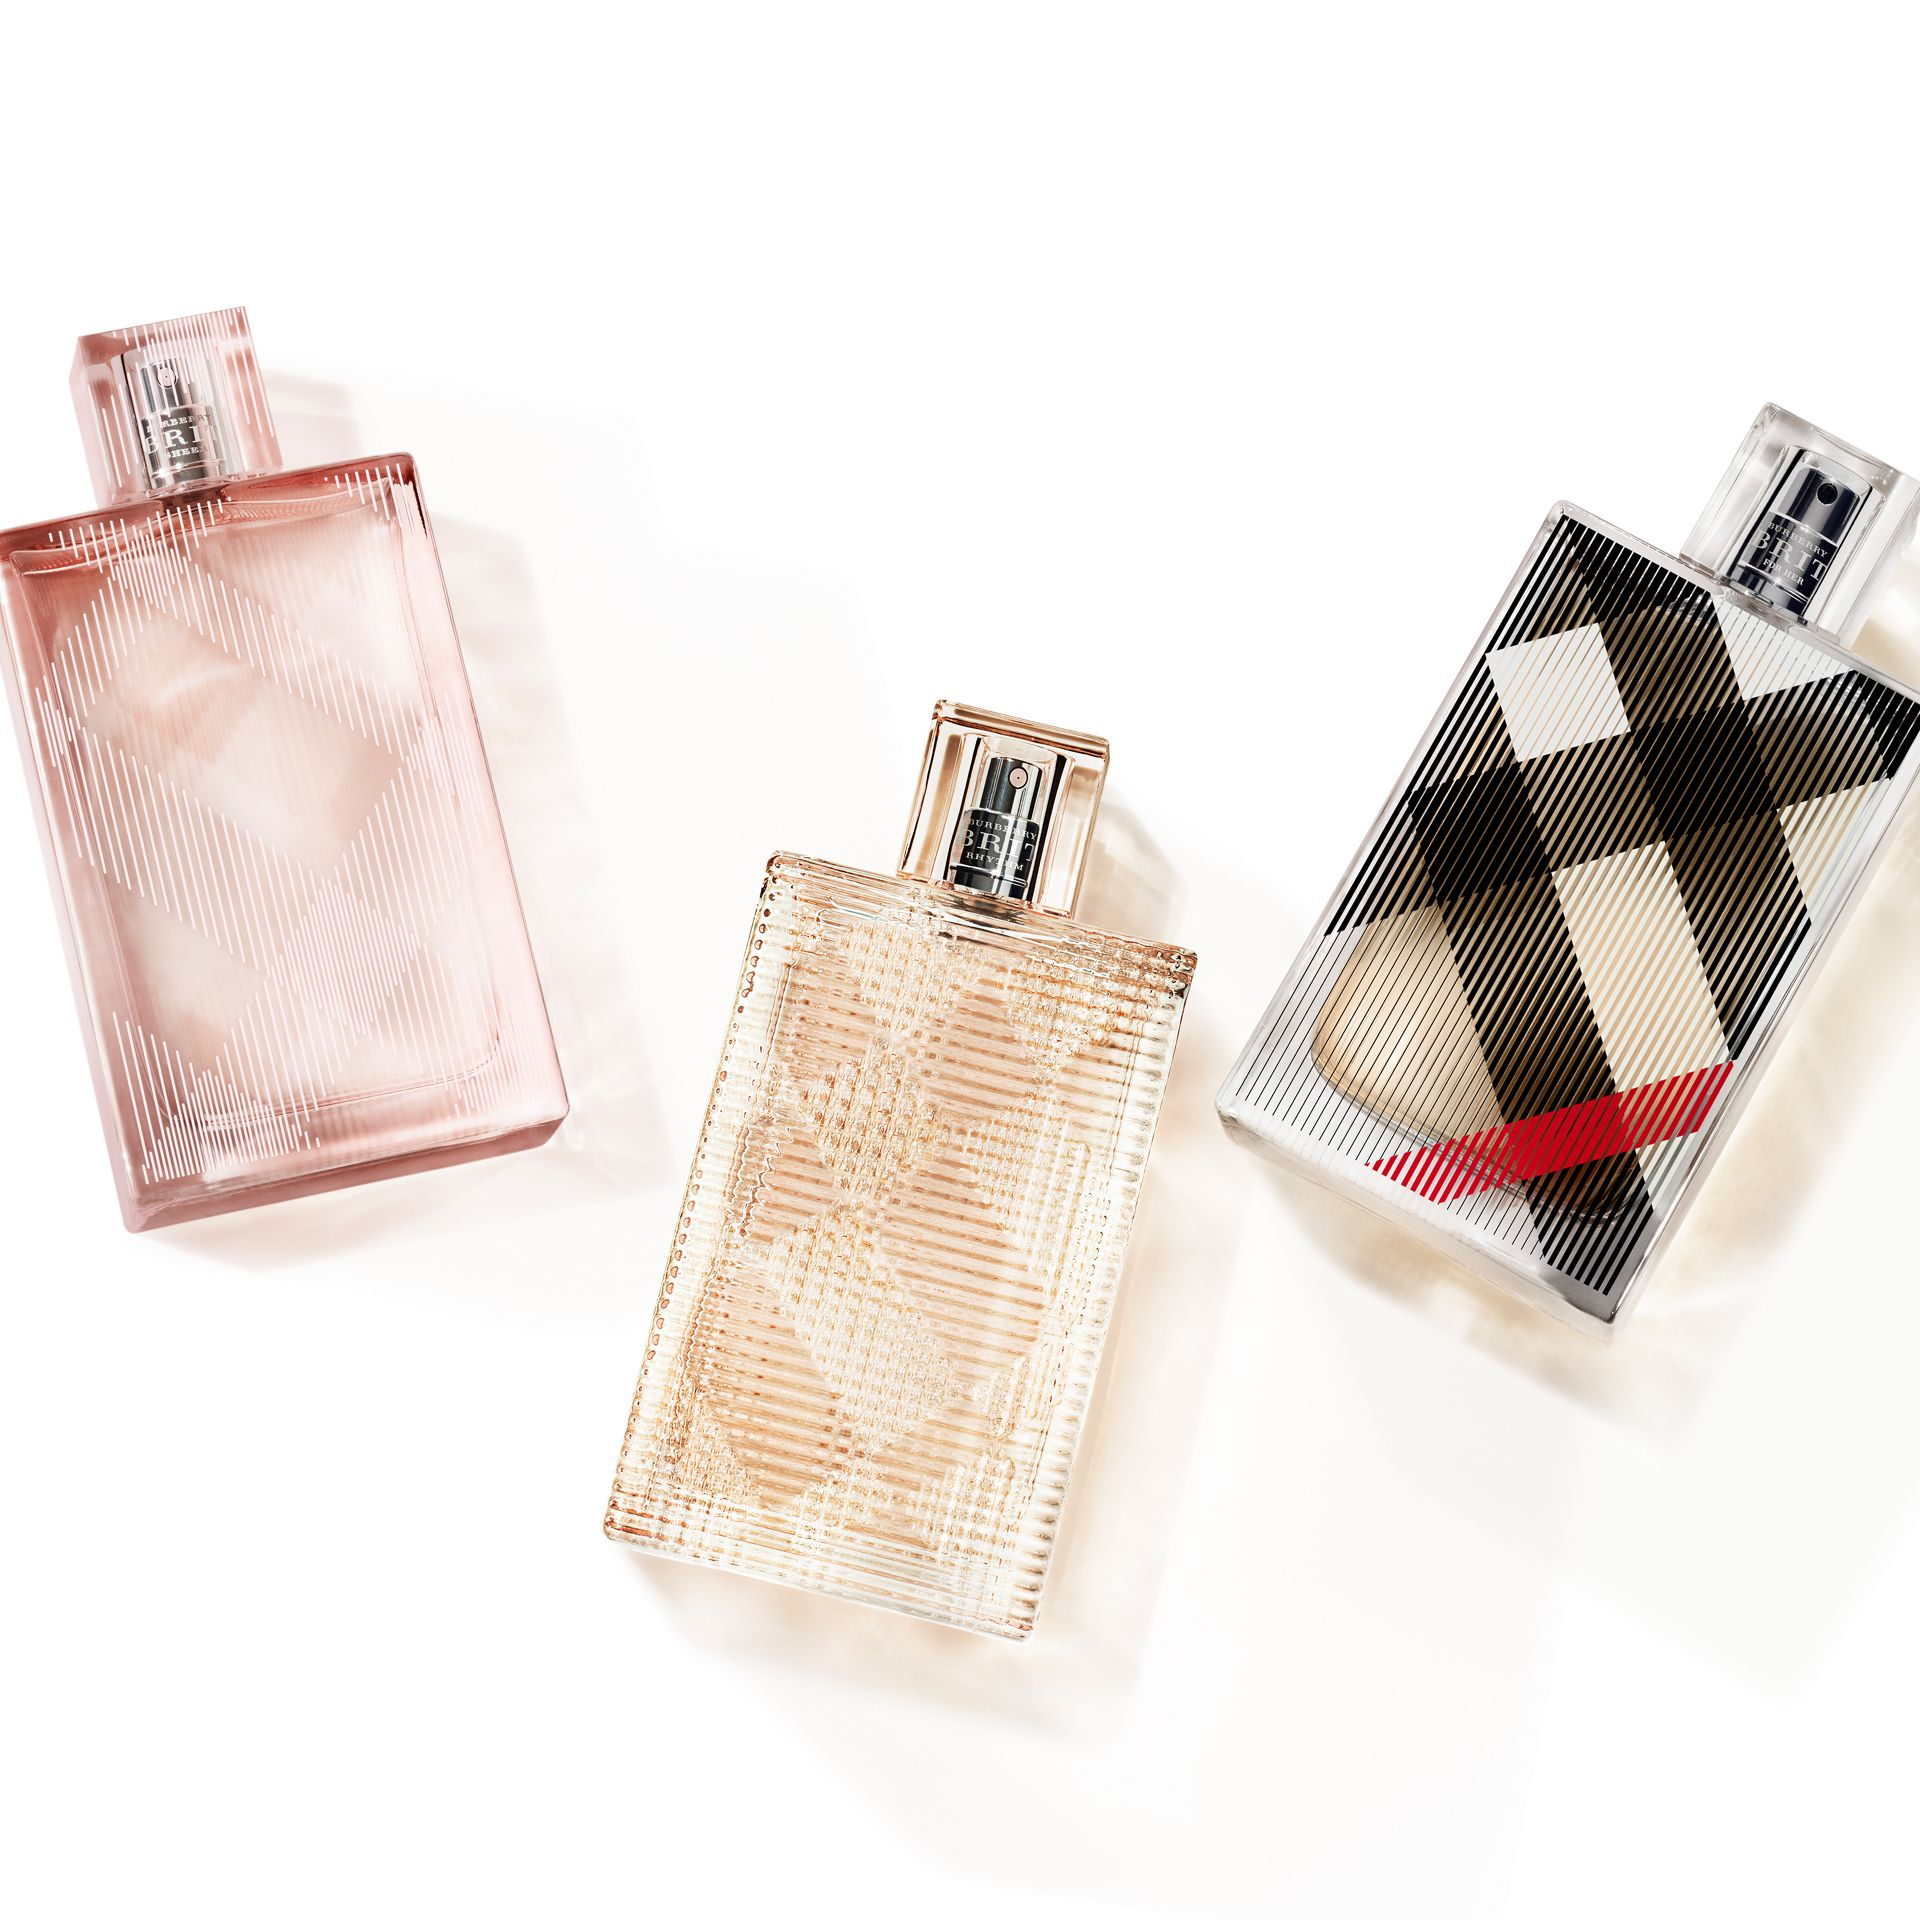 Burberry Brit Sheer Eau de Toilette 50ml - Women | Burberry Hong Kong - gallery image 3